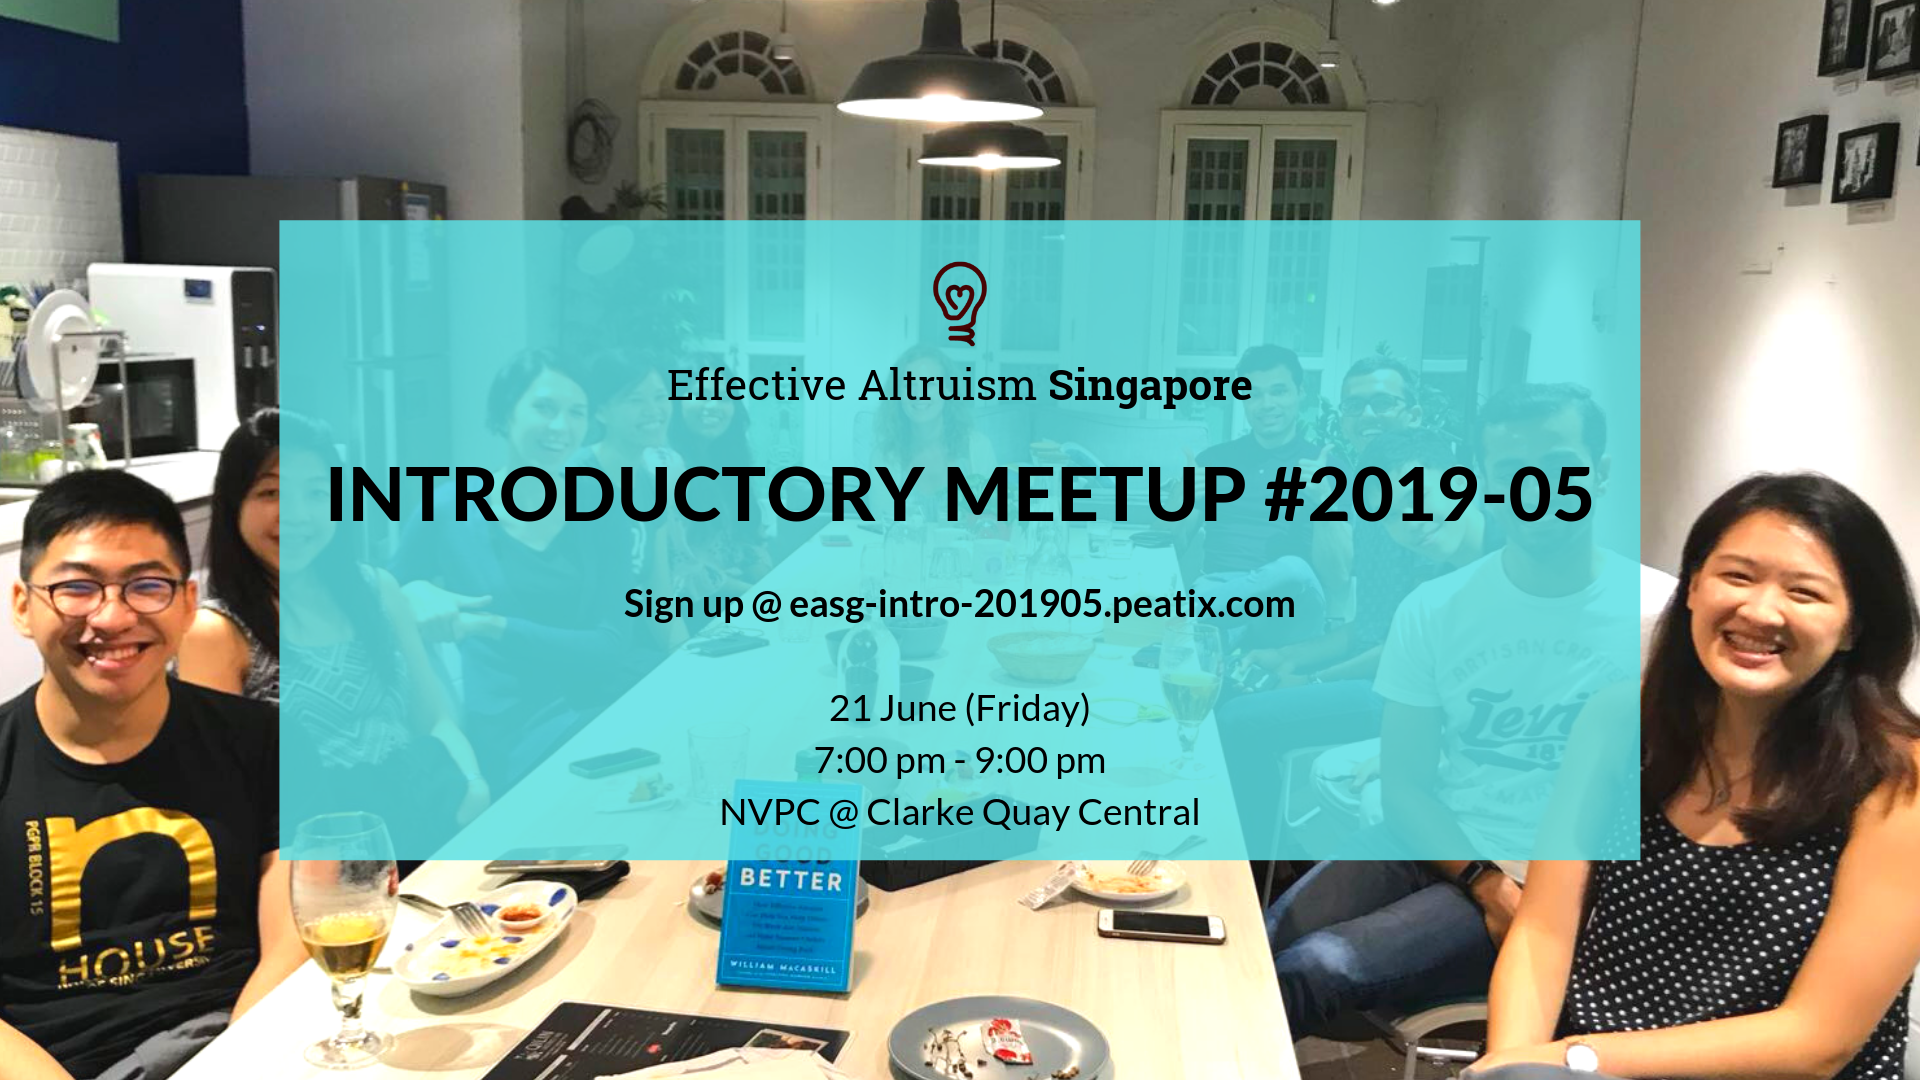 Effective Altruism Singapore_ Introductory Meetup #2019-05 Facebook Poster.png